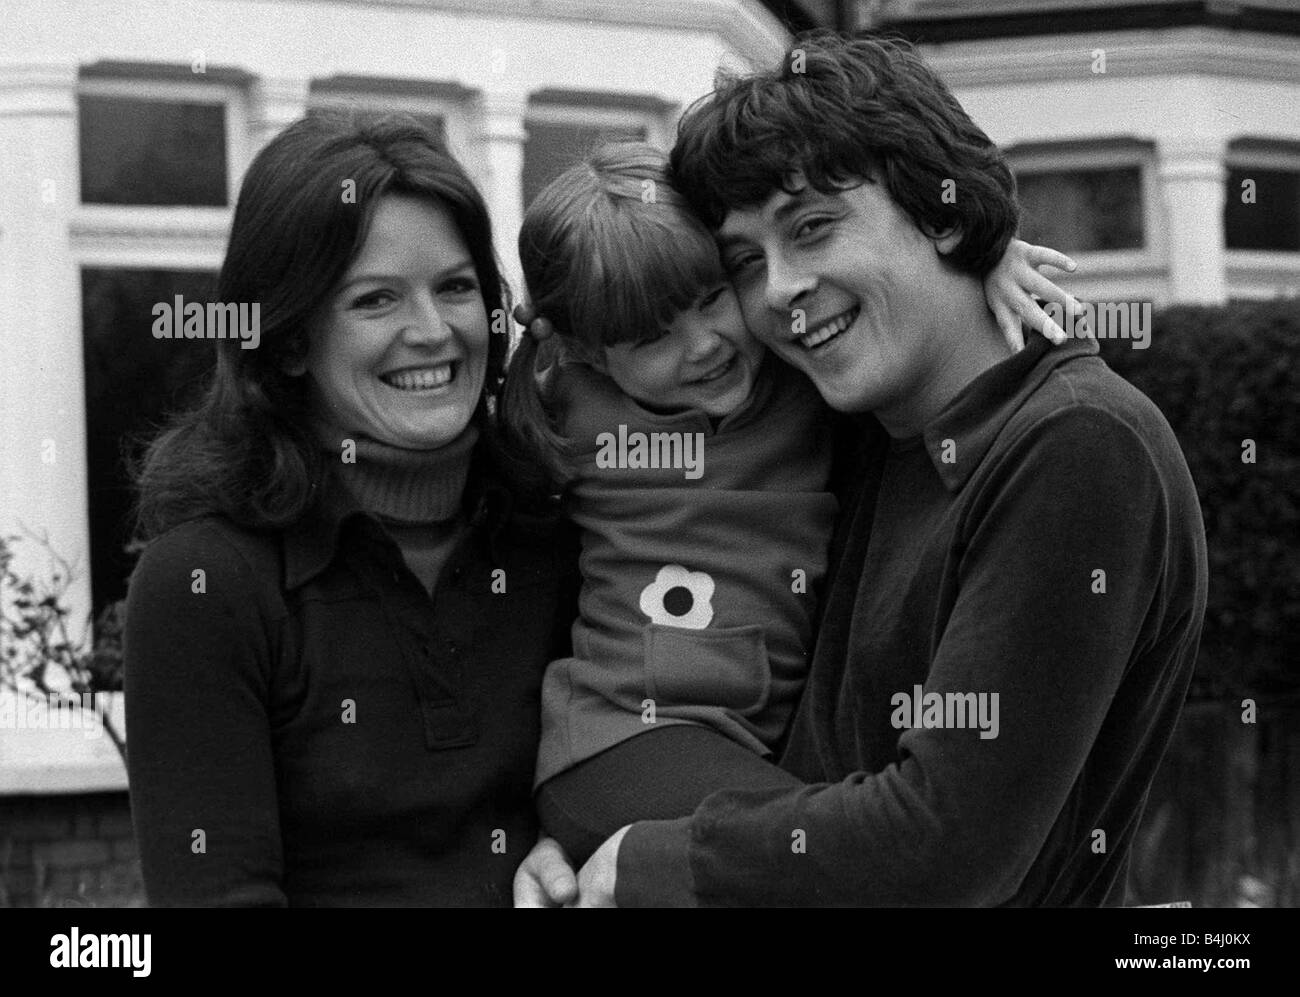 richard beckinsale this is your life